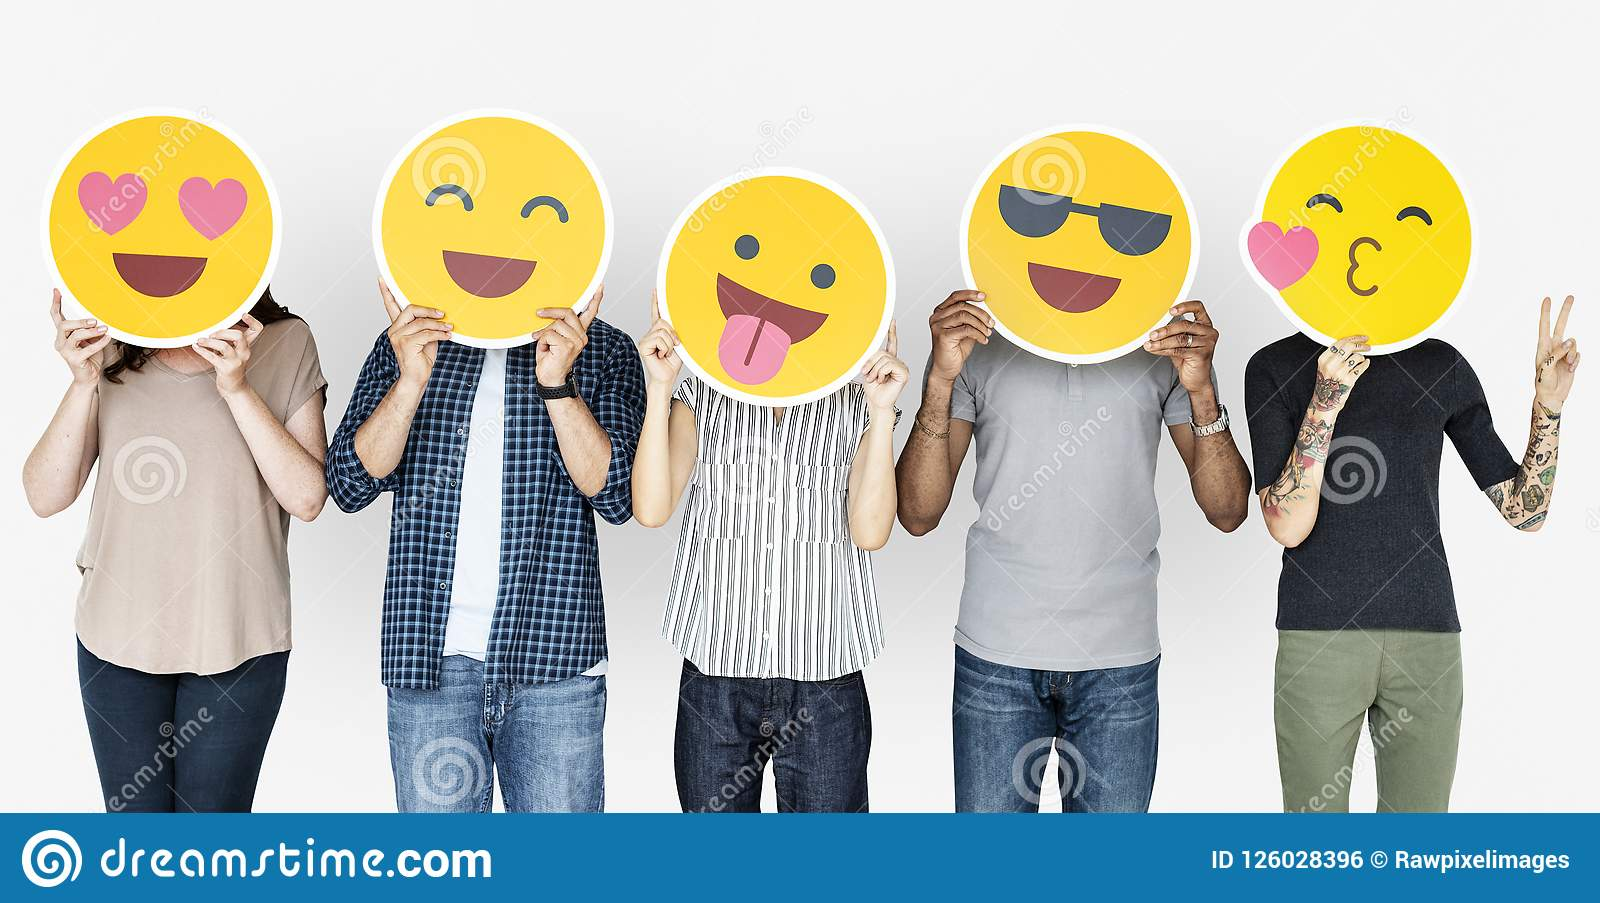 Povos diversos que guardam emoticons felizes